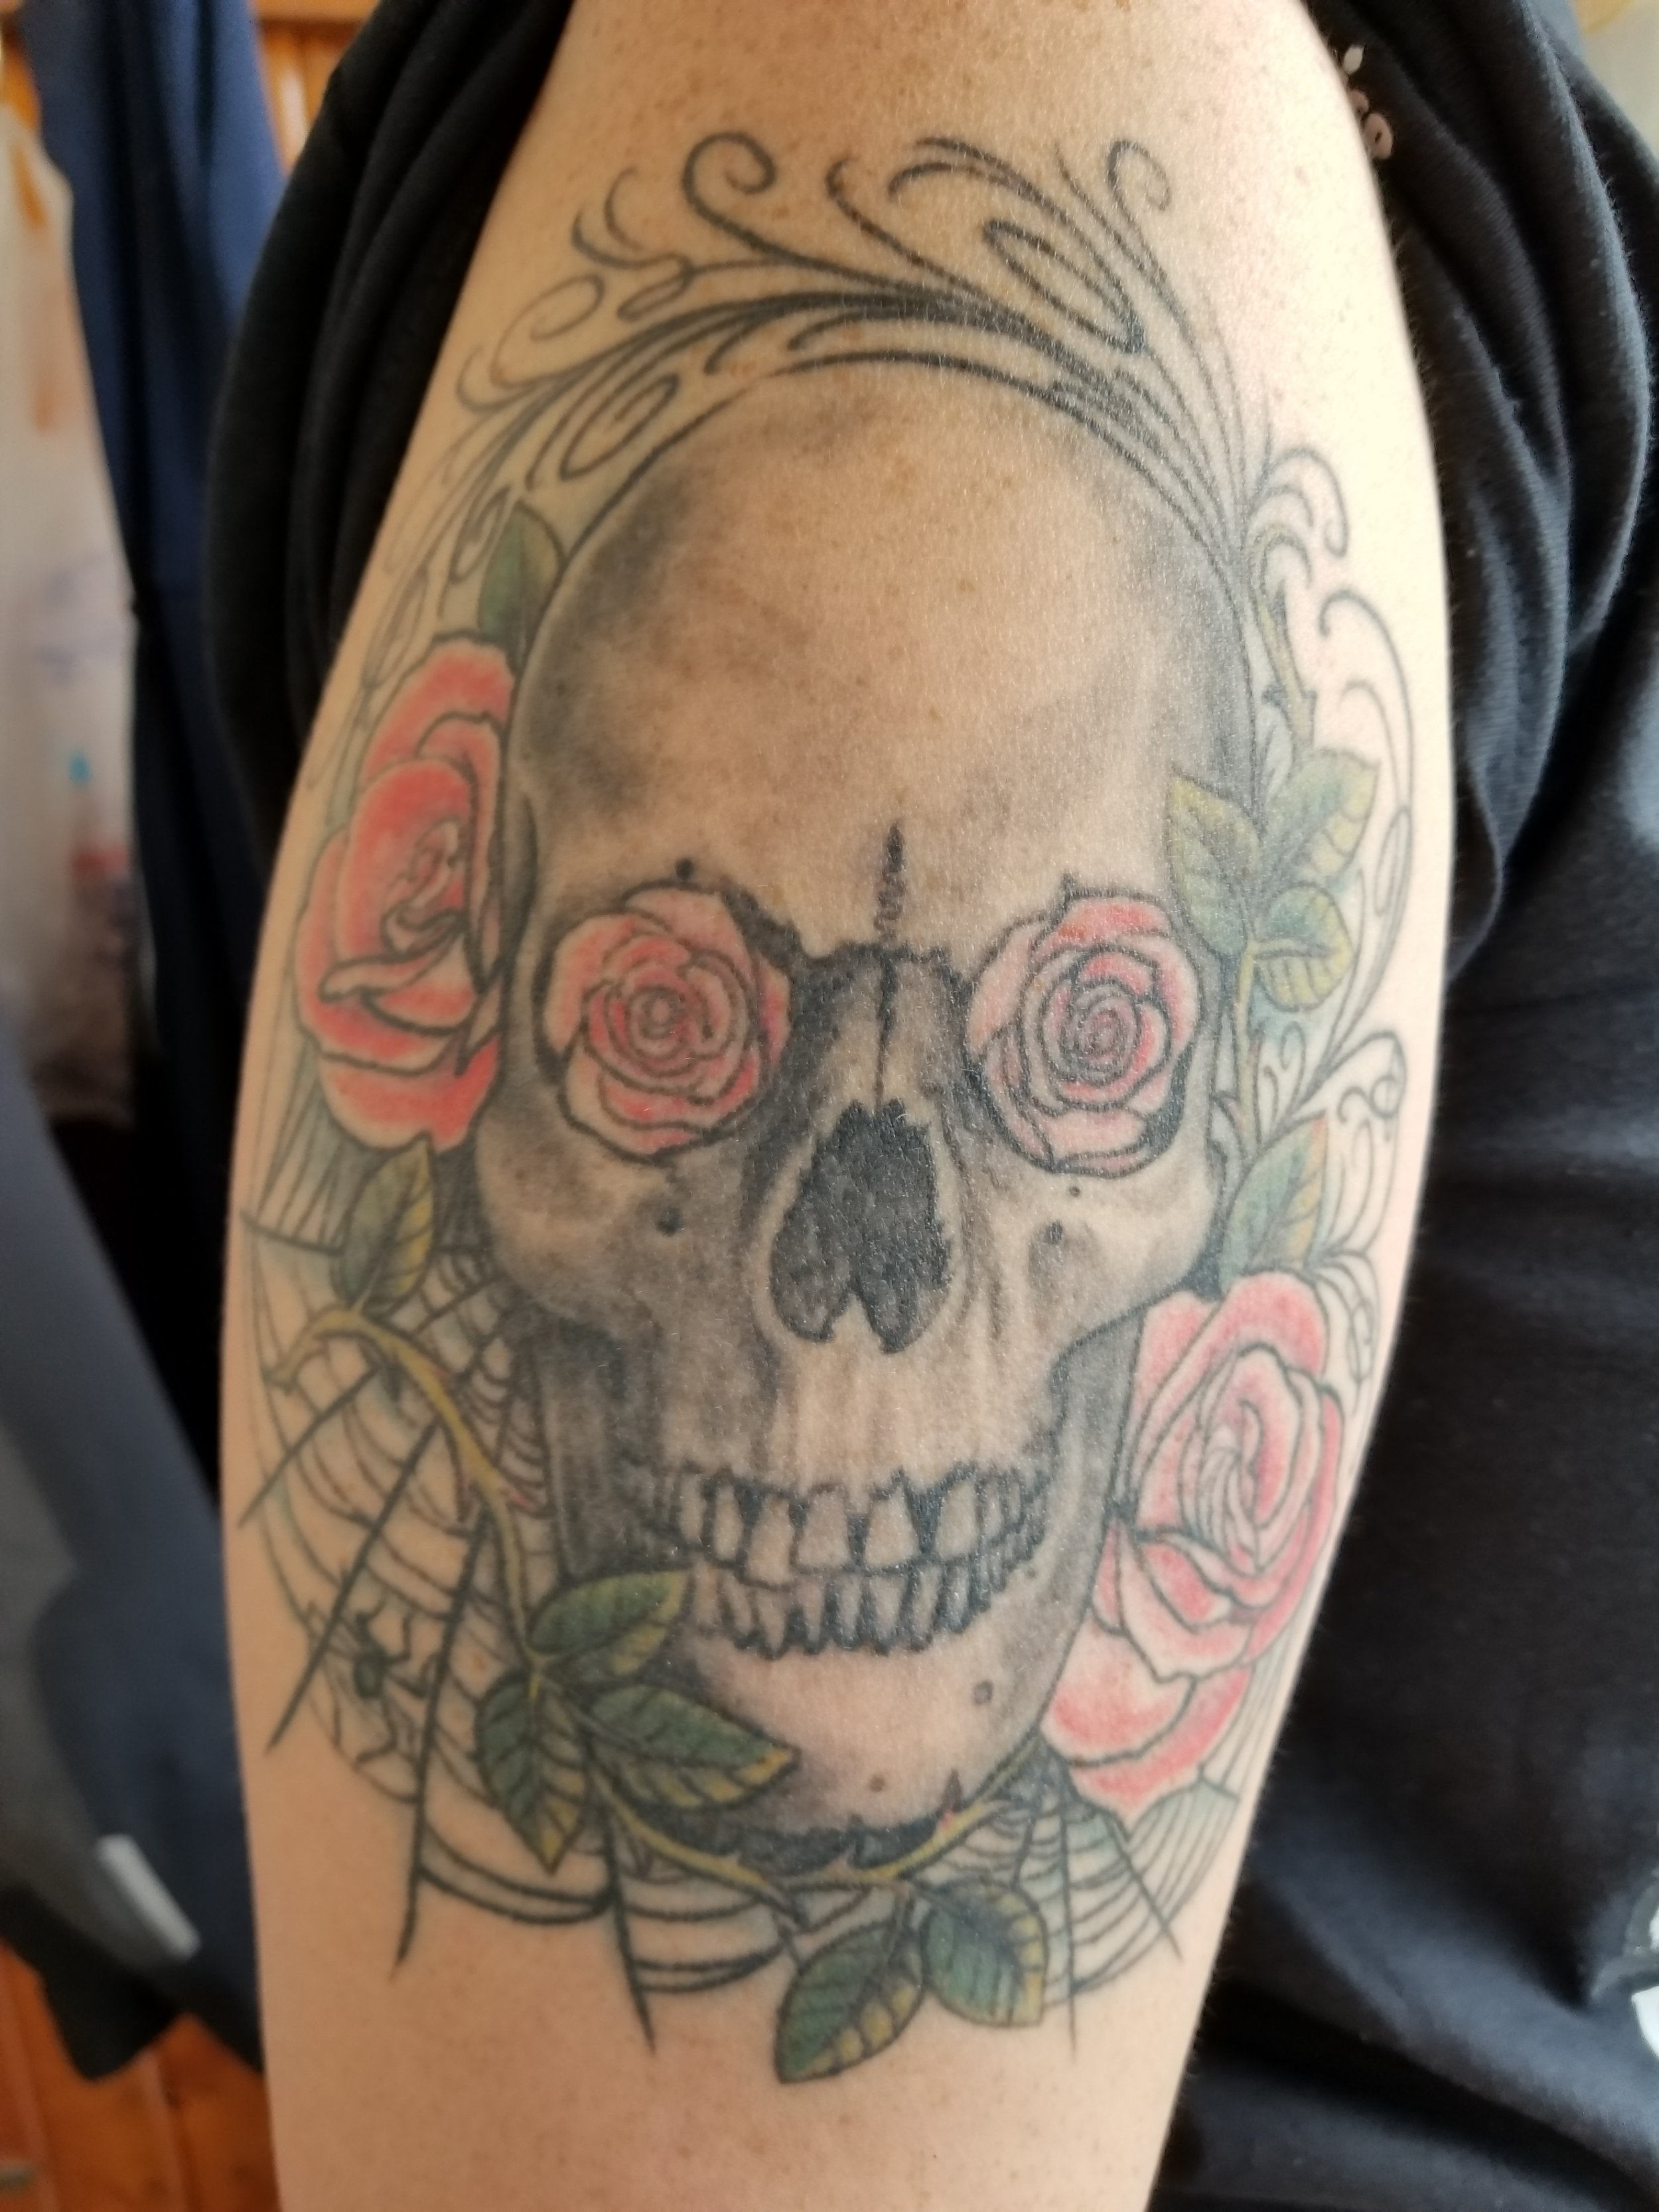 Skull, roses and spider web